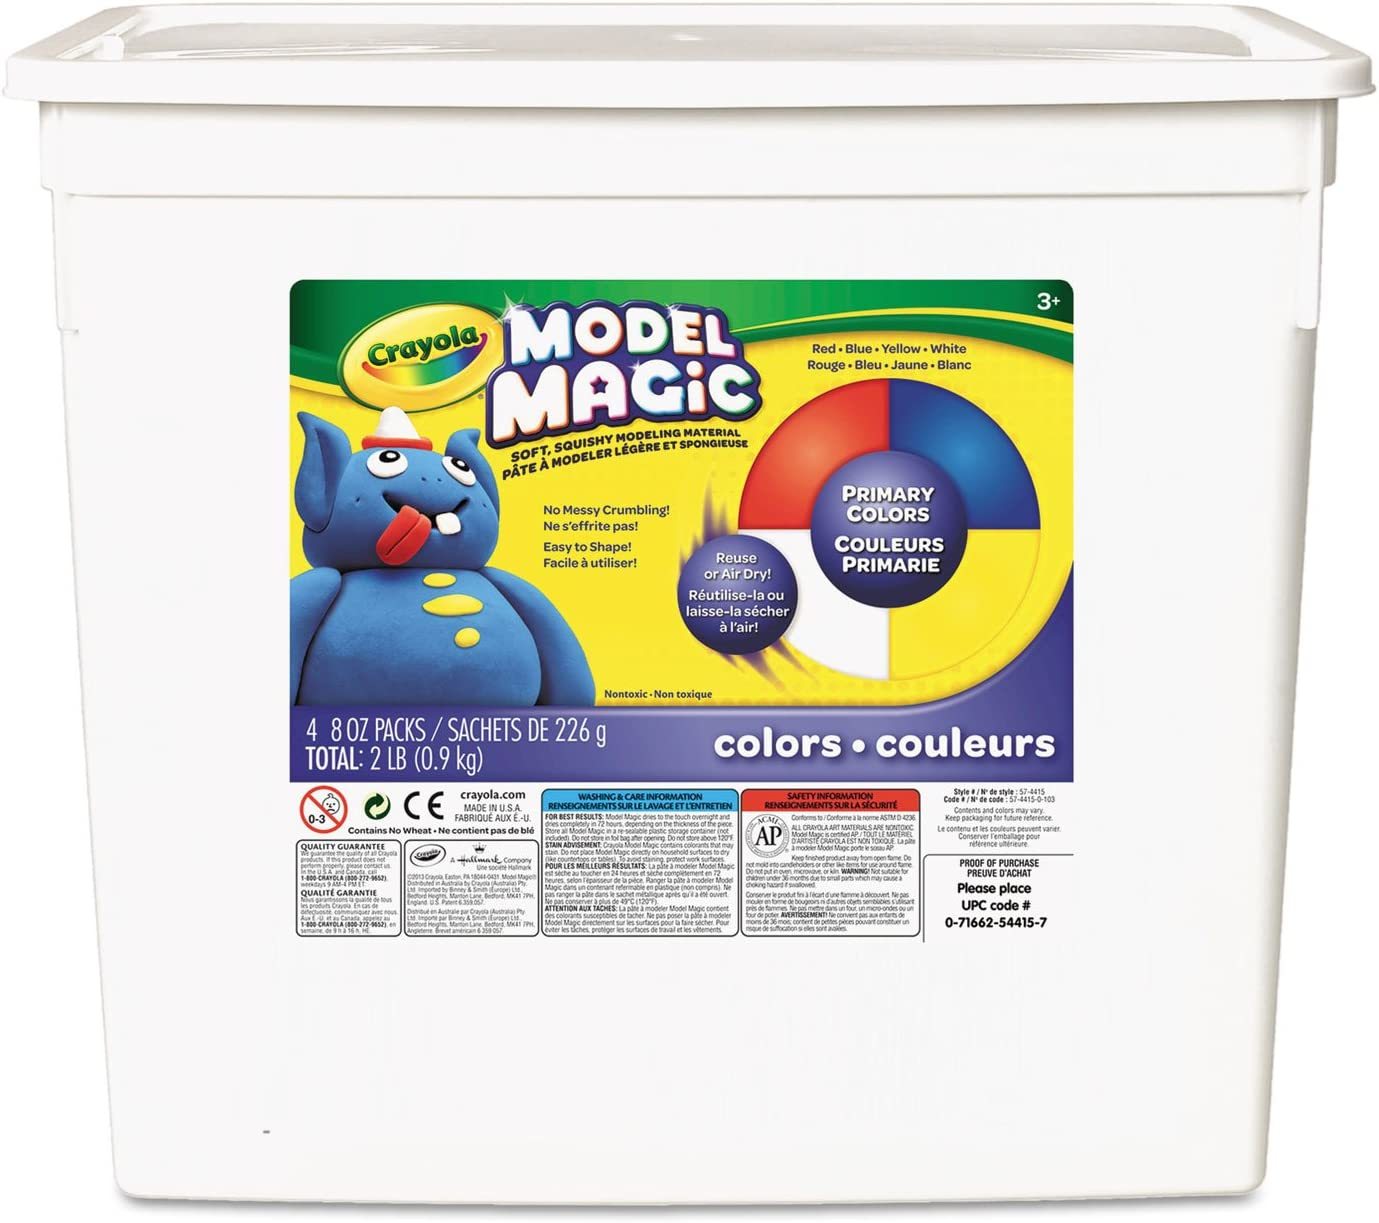 Crayola 574415 Model Magic Modeling Compound Red oz 8 Blue each Clearance SALE Limited time Max 73% OFF